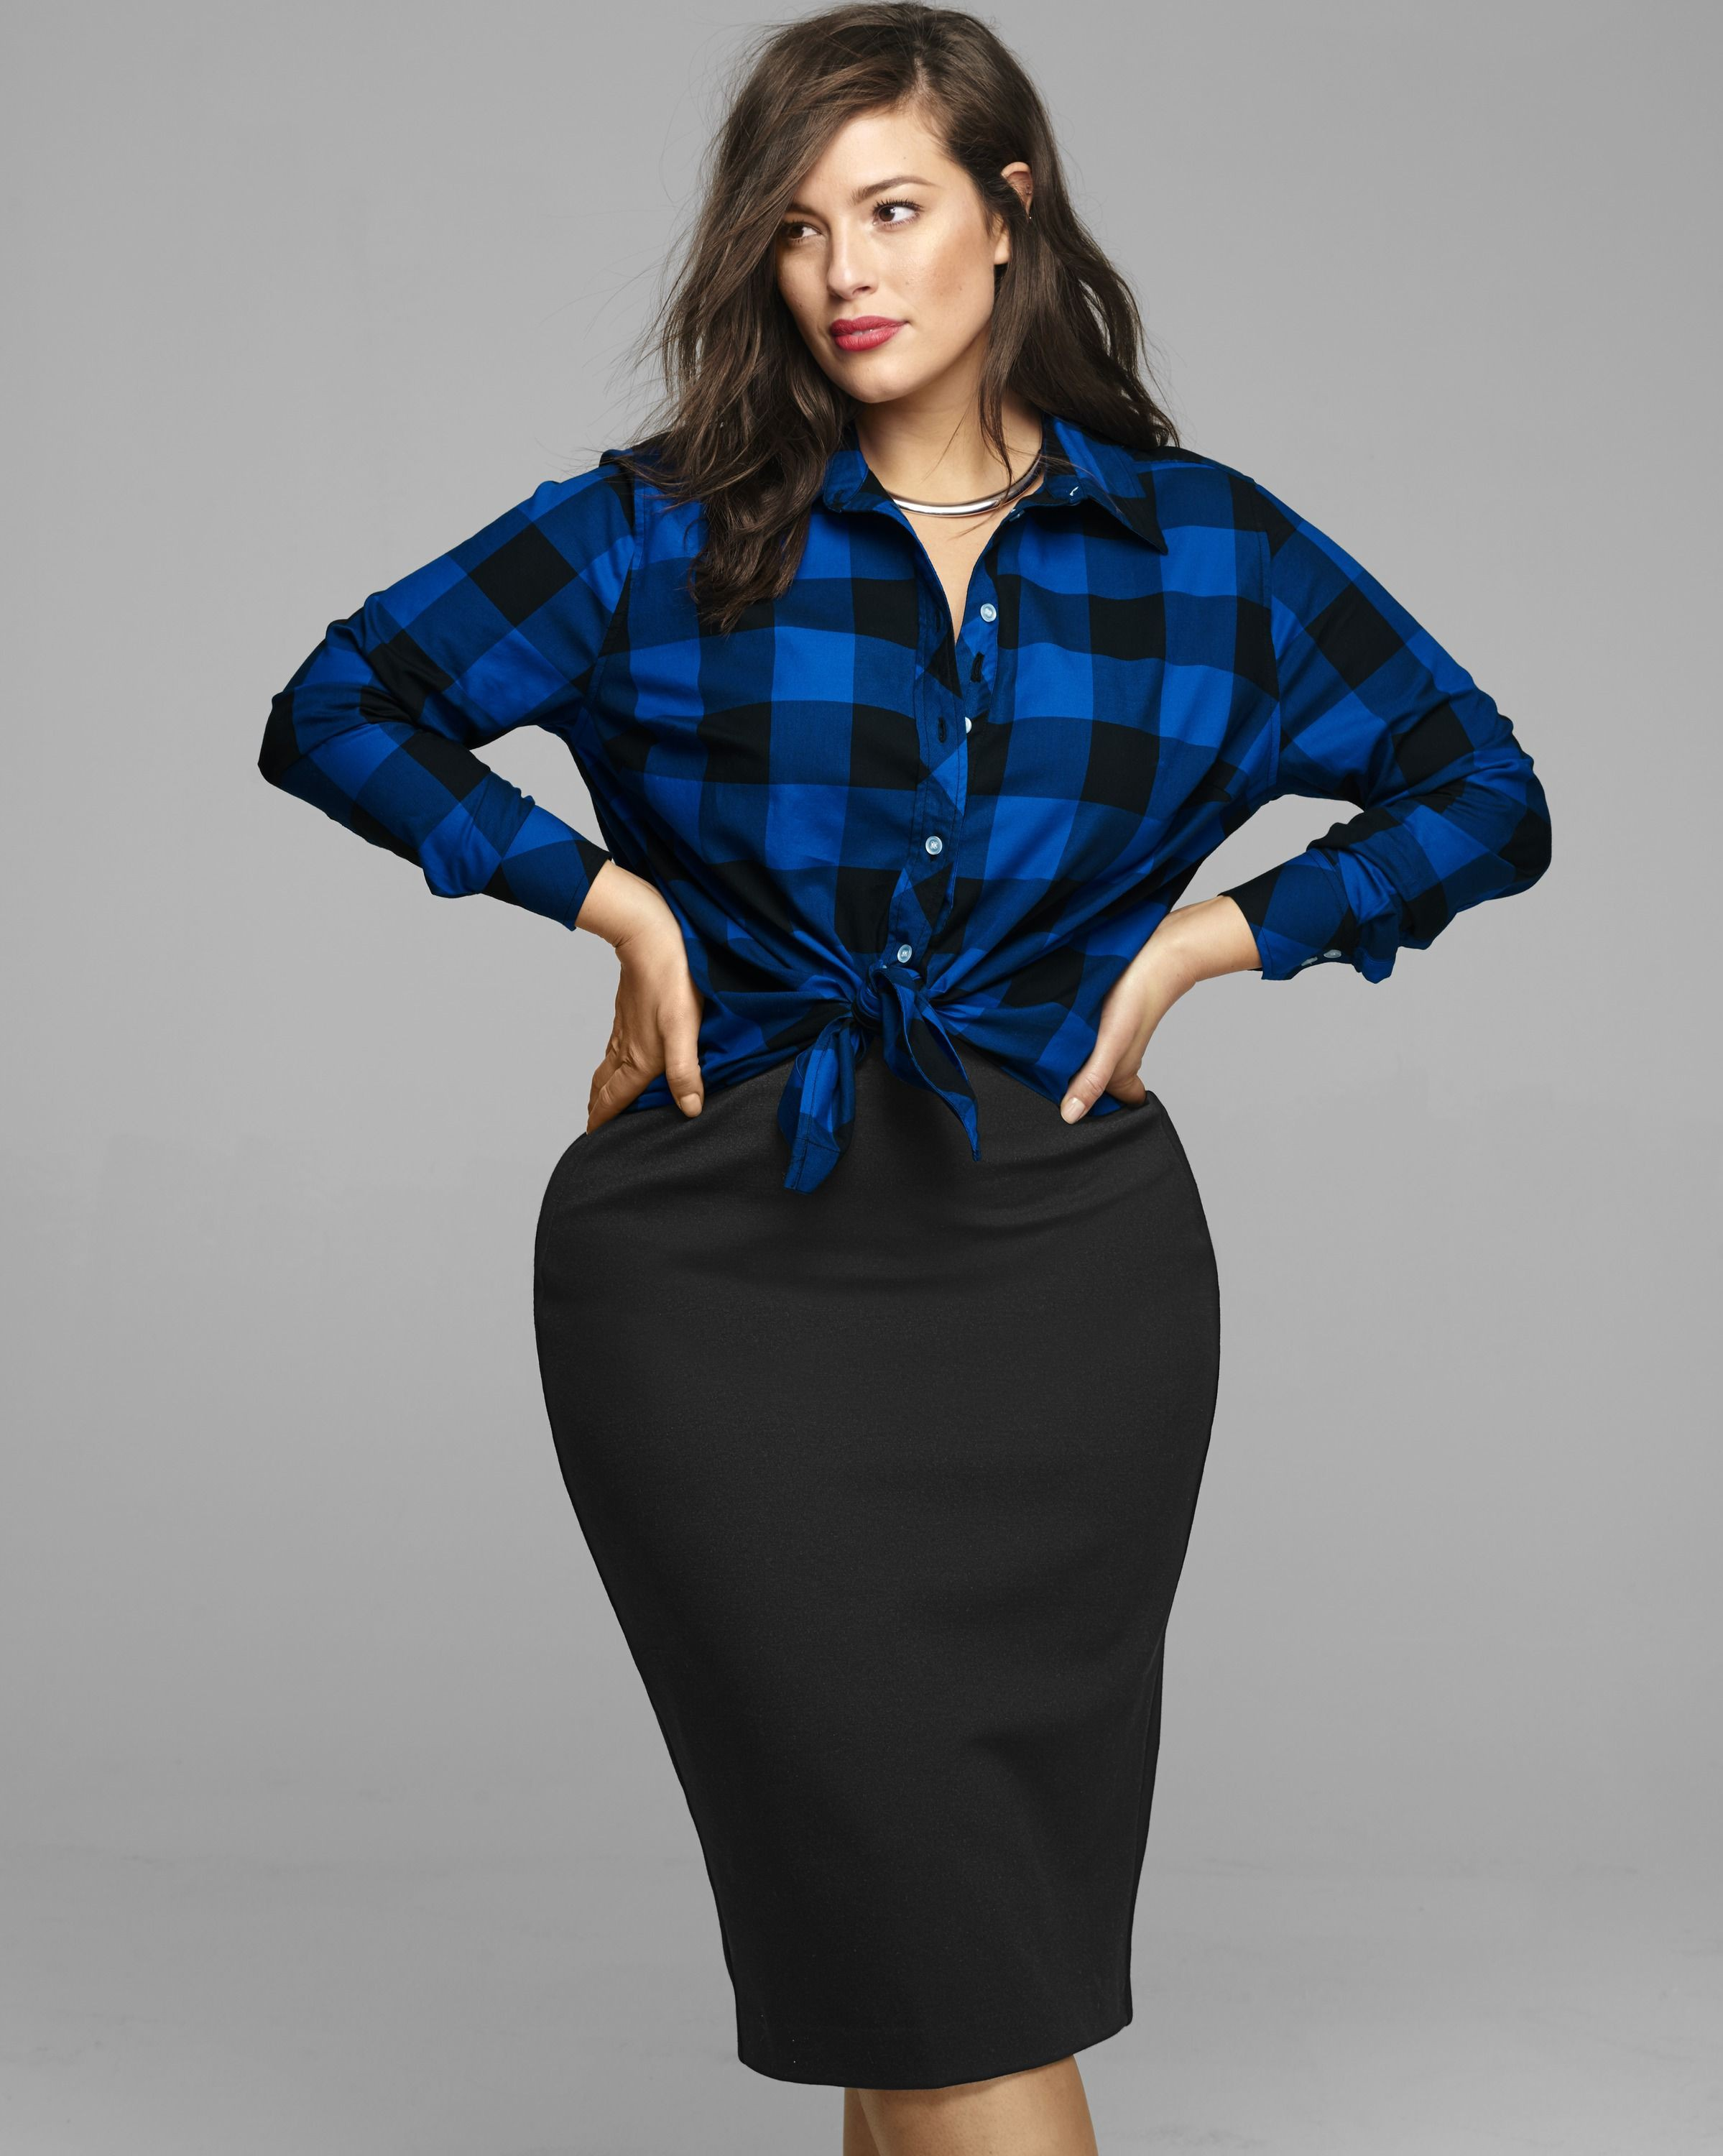 Casual Plus Size Pencil Skirt Outfits